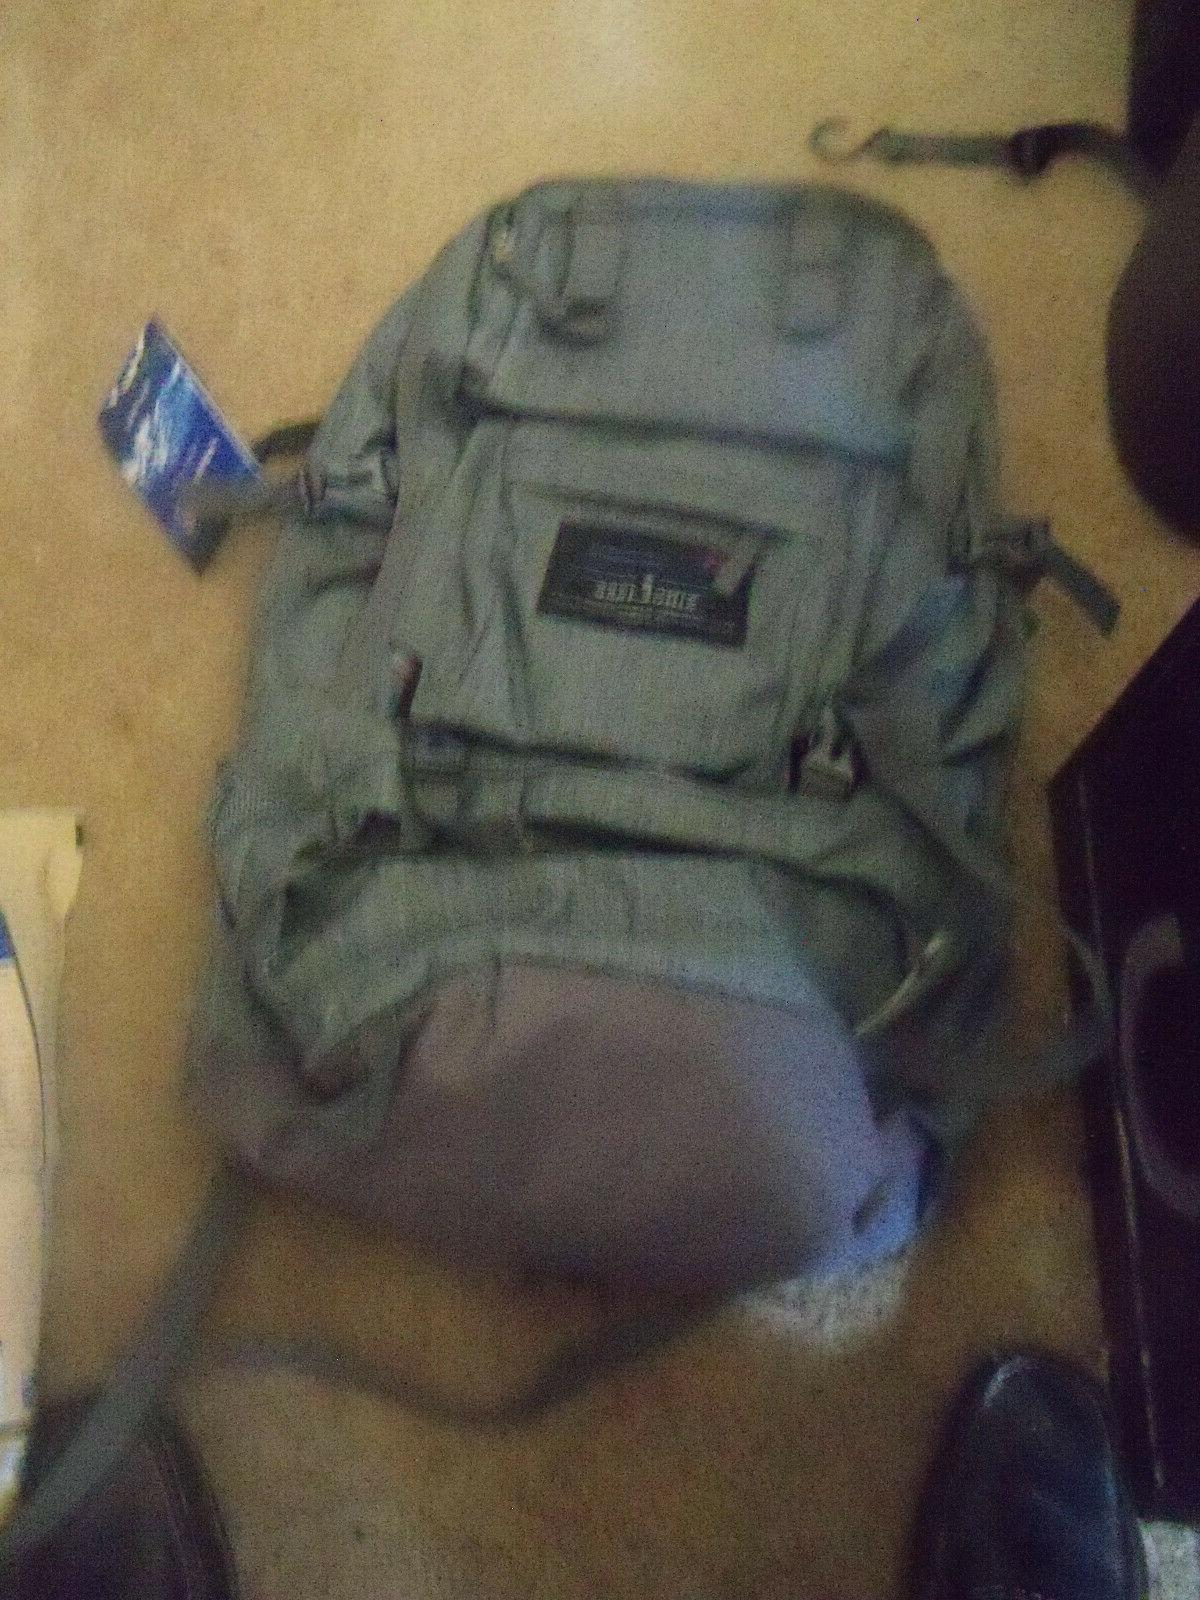 mountaintop adventure internal frame hiking backpack w